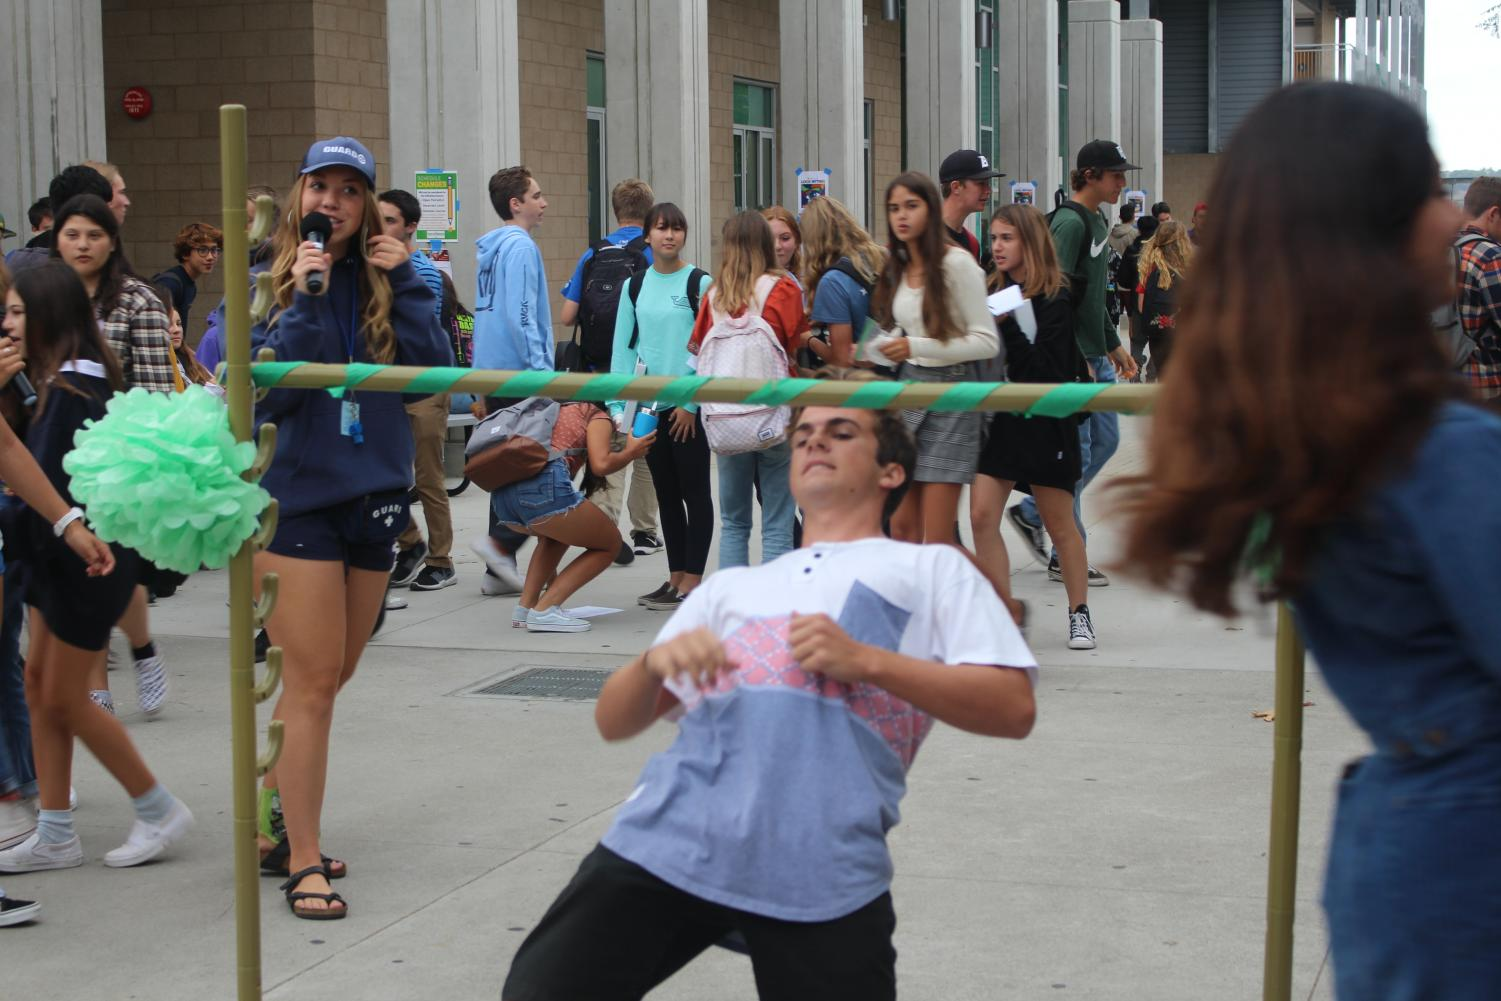 Senior+Mikey+Moran+participates+in+Thursday%27s+lunch+limbo.+As+a+part+of+Hello+Week%2C+ASB+planned+fun+lunch+activities%2C+including+this+limbo+competition+for+class+cup+points.%0A